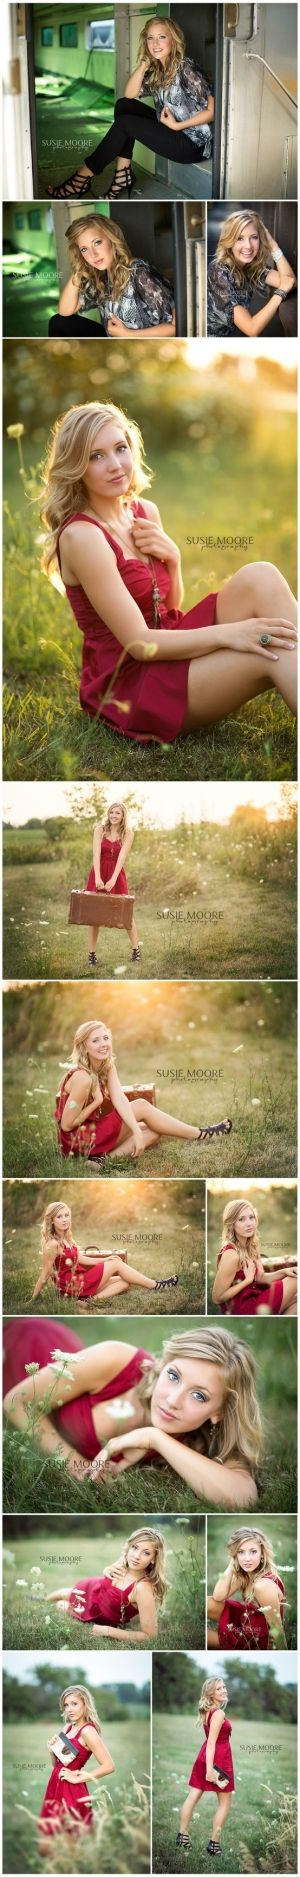 Susie Moore Photography by Jeep girl